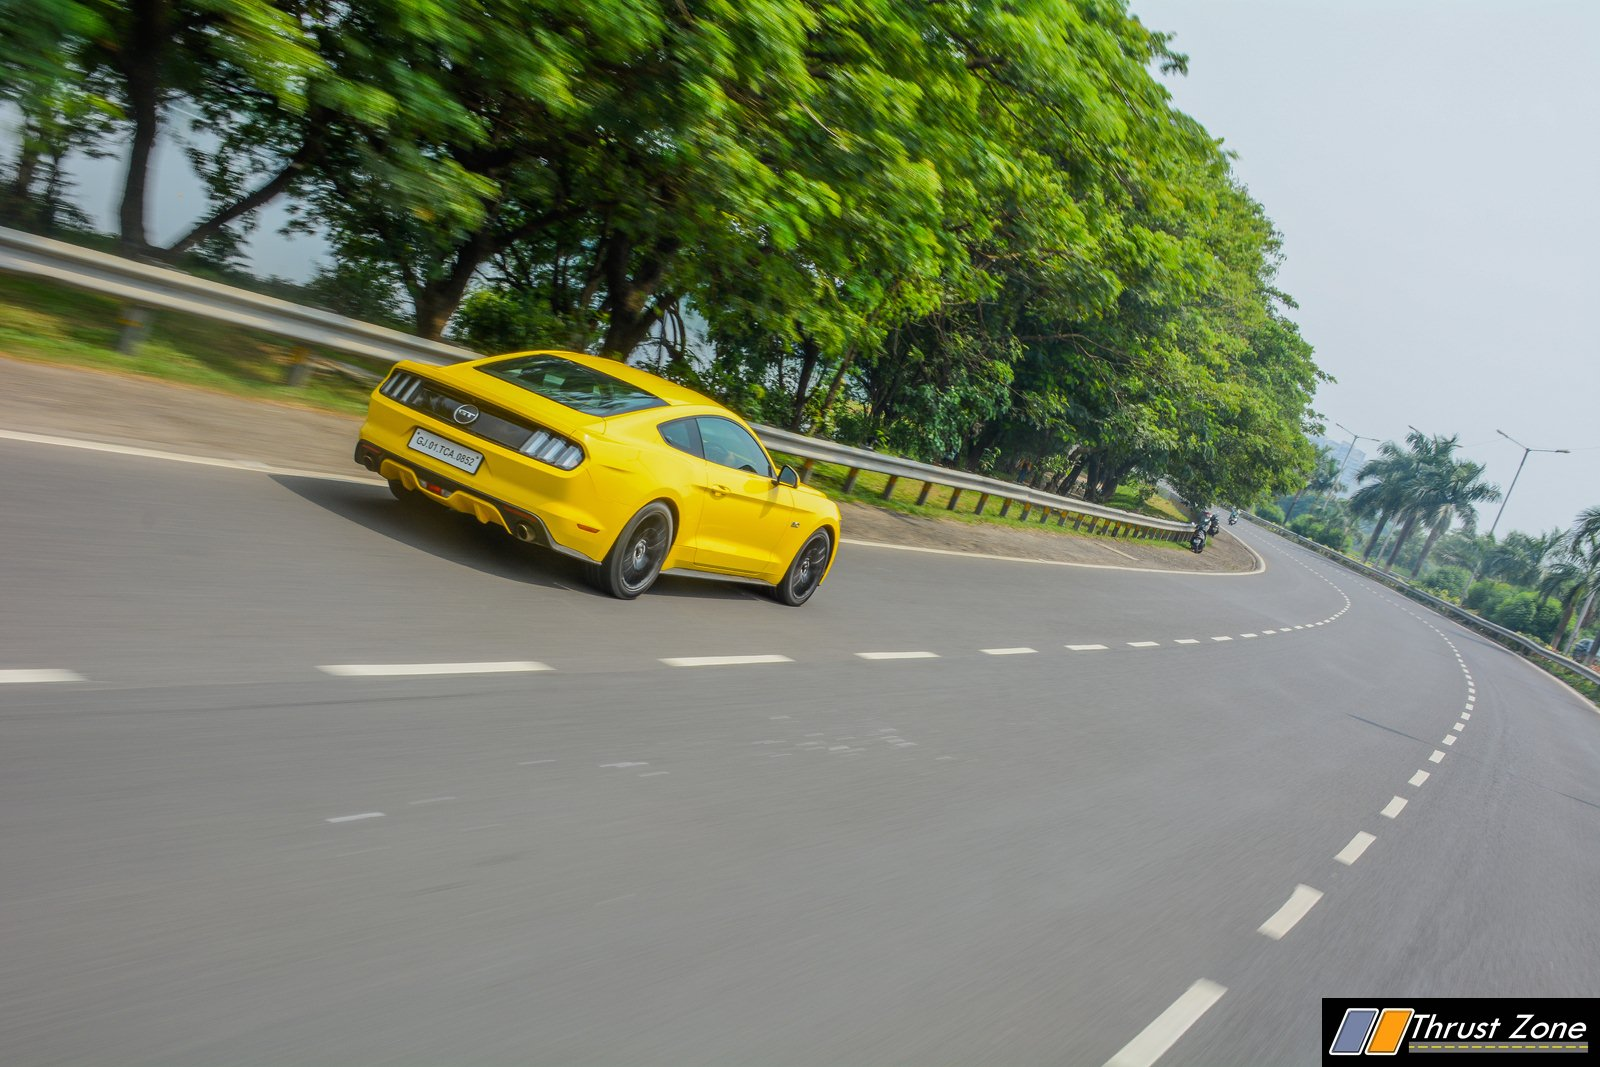 https://www.thrustzone.com/wp-content/uploads/2018/09/Ford-Mustang-India-V8-Review-4.jpg